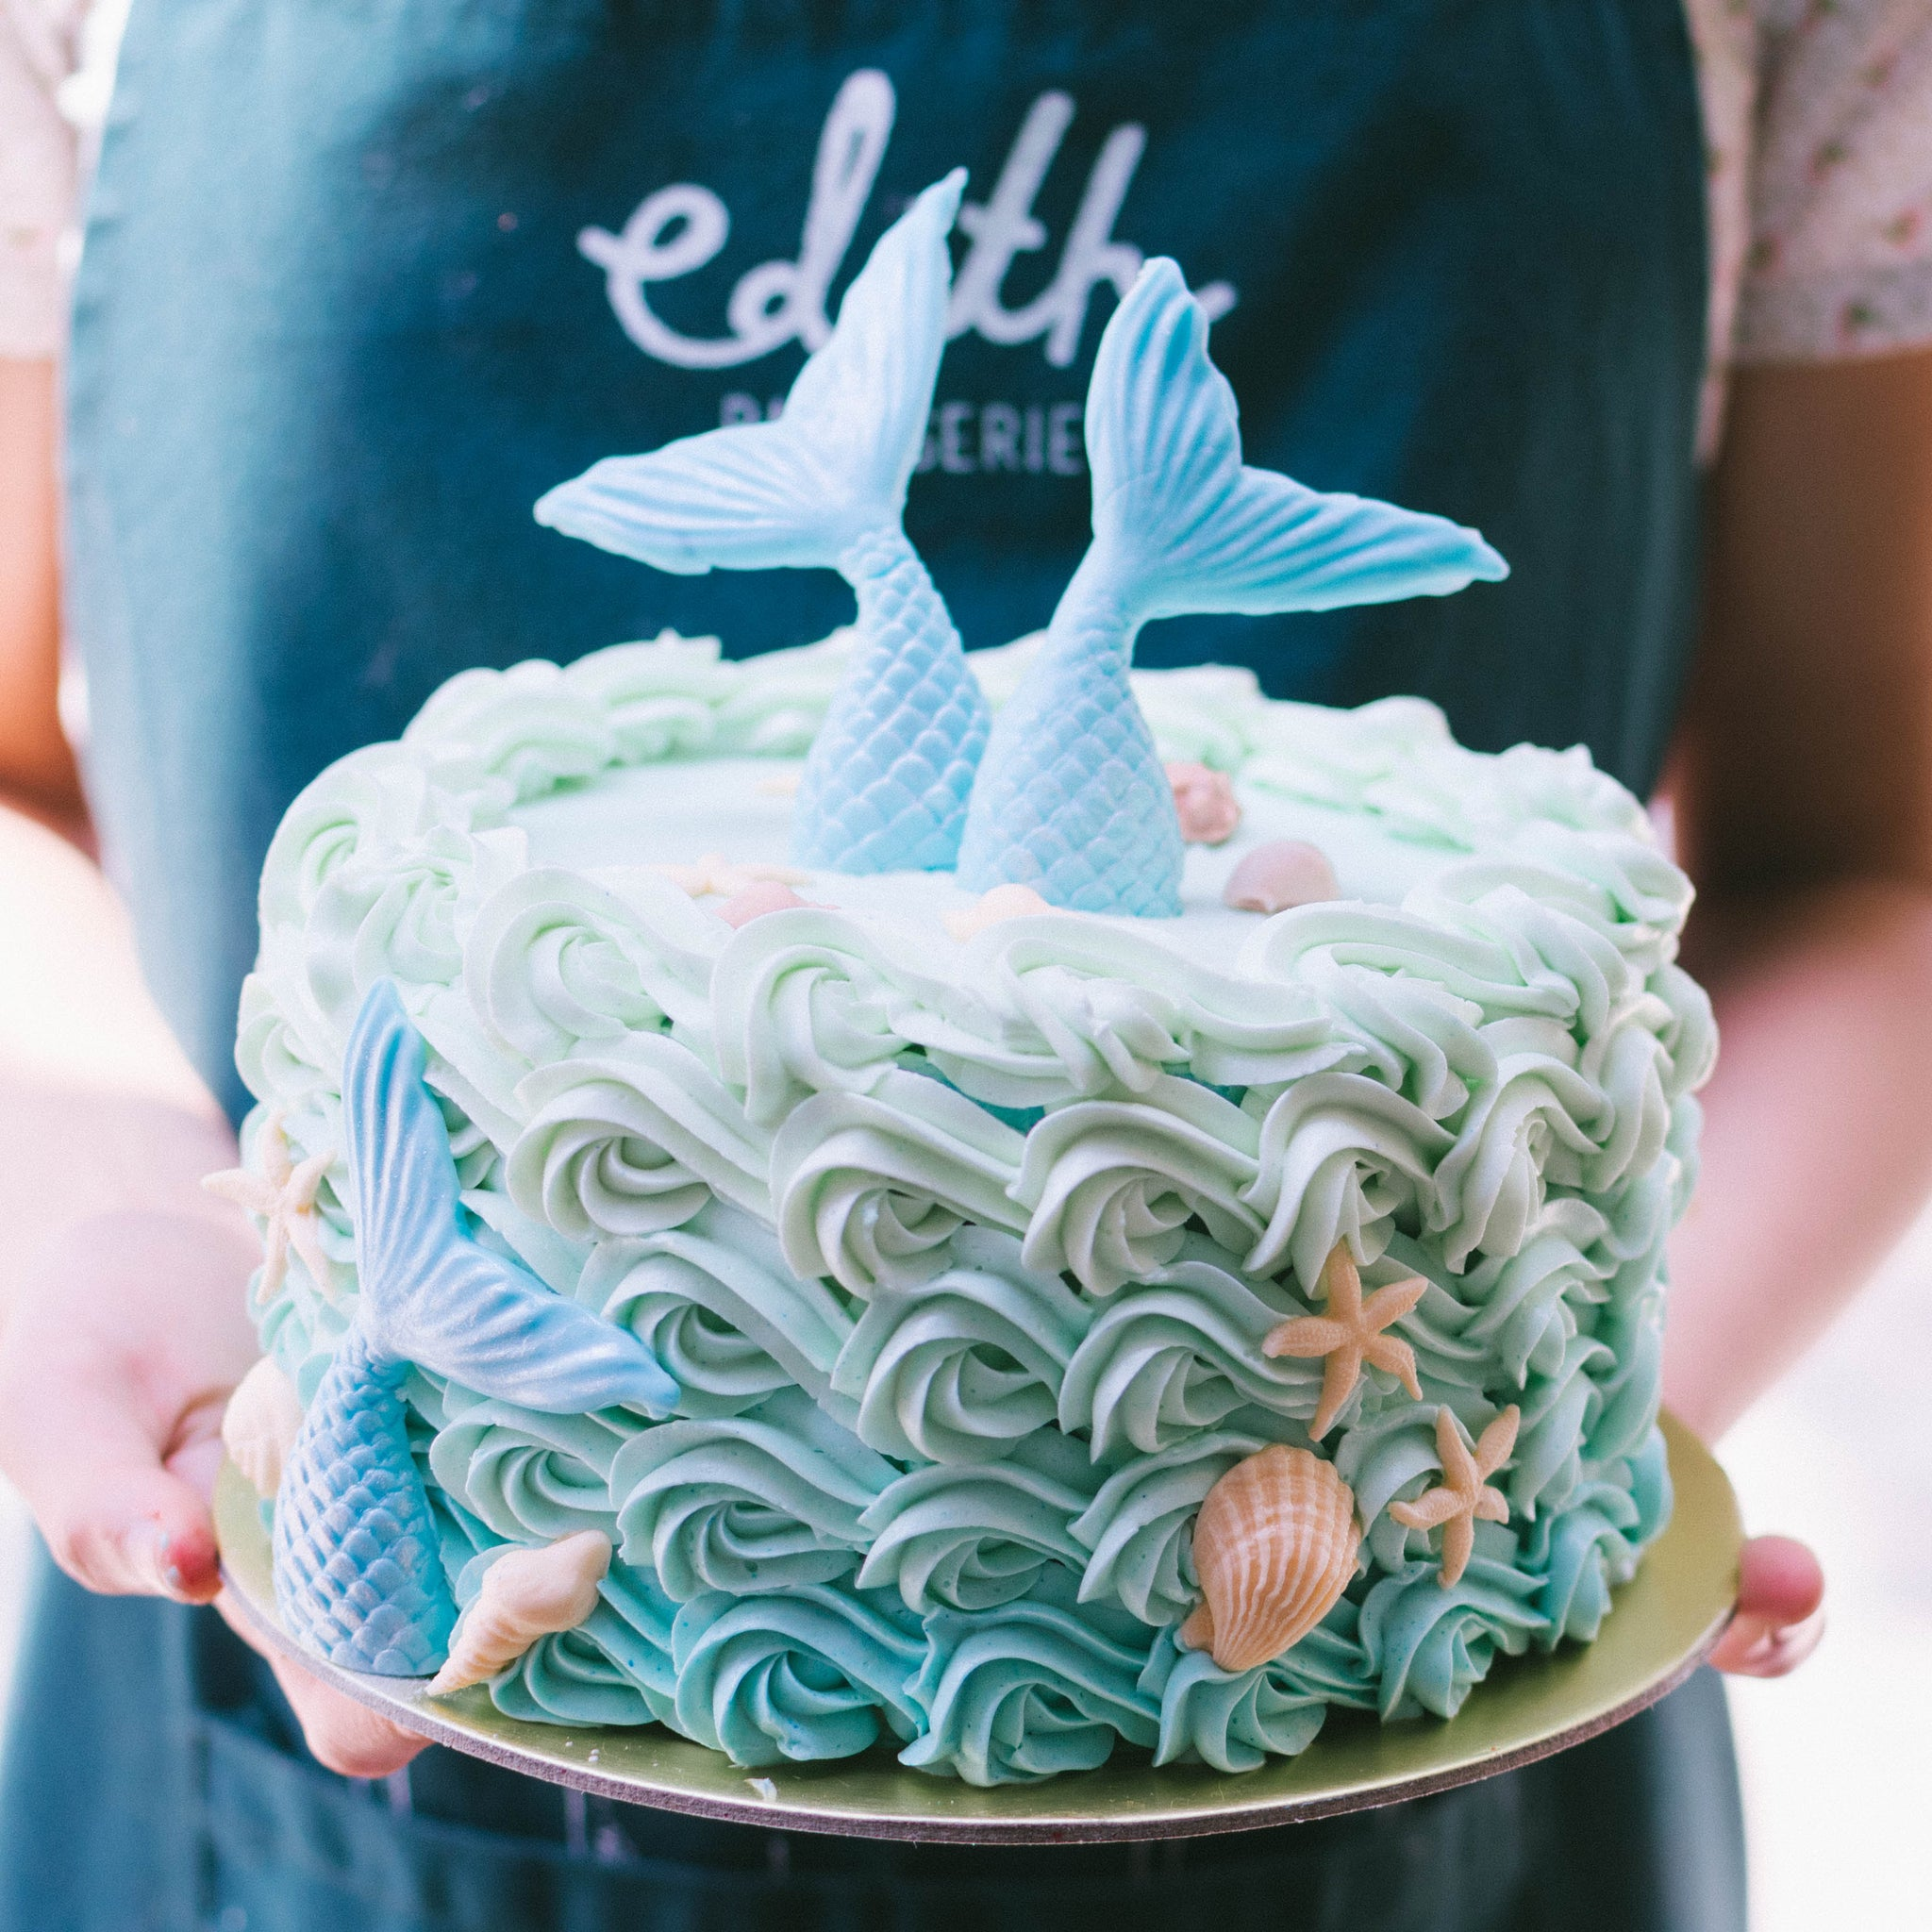 Wavy Rosette Mermaid Cake - Custom Bakes by Edith Patisserie